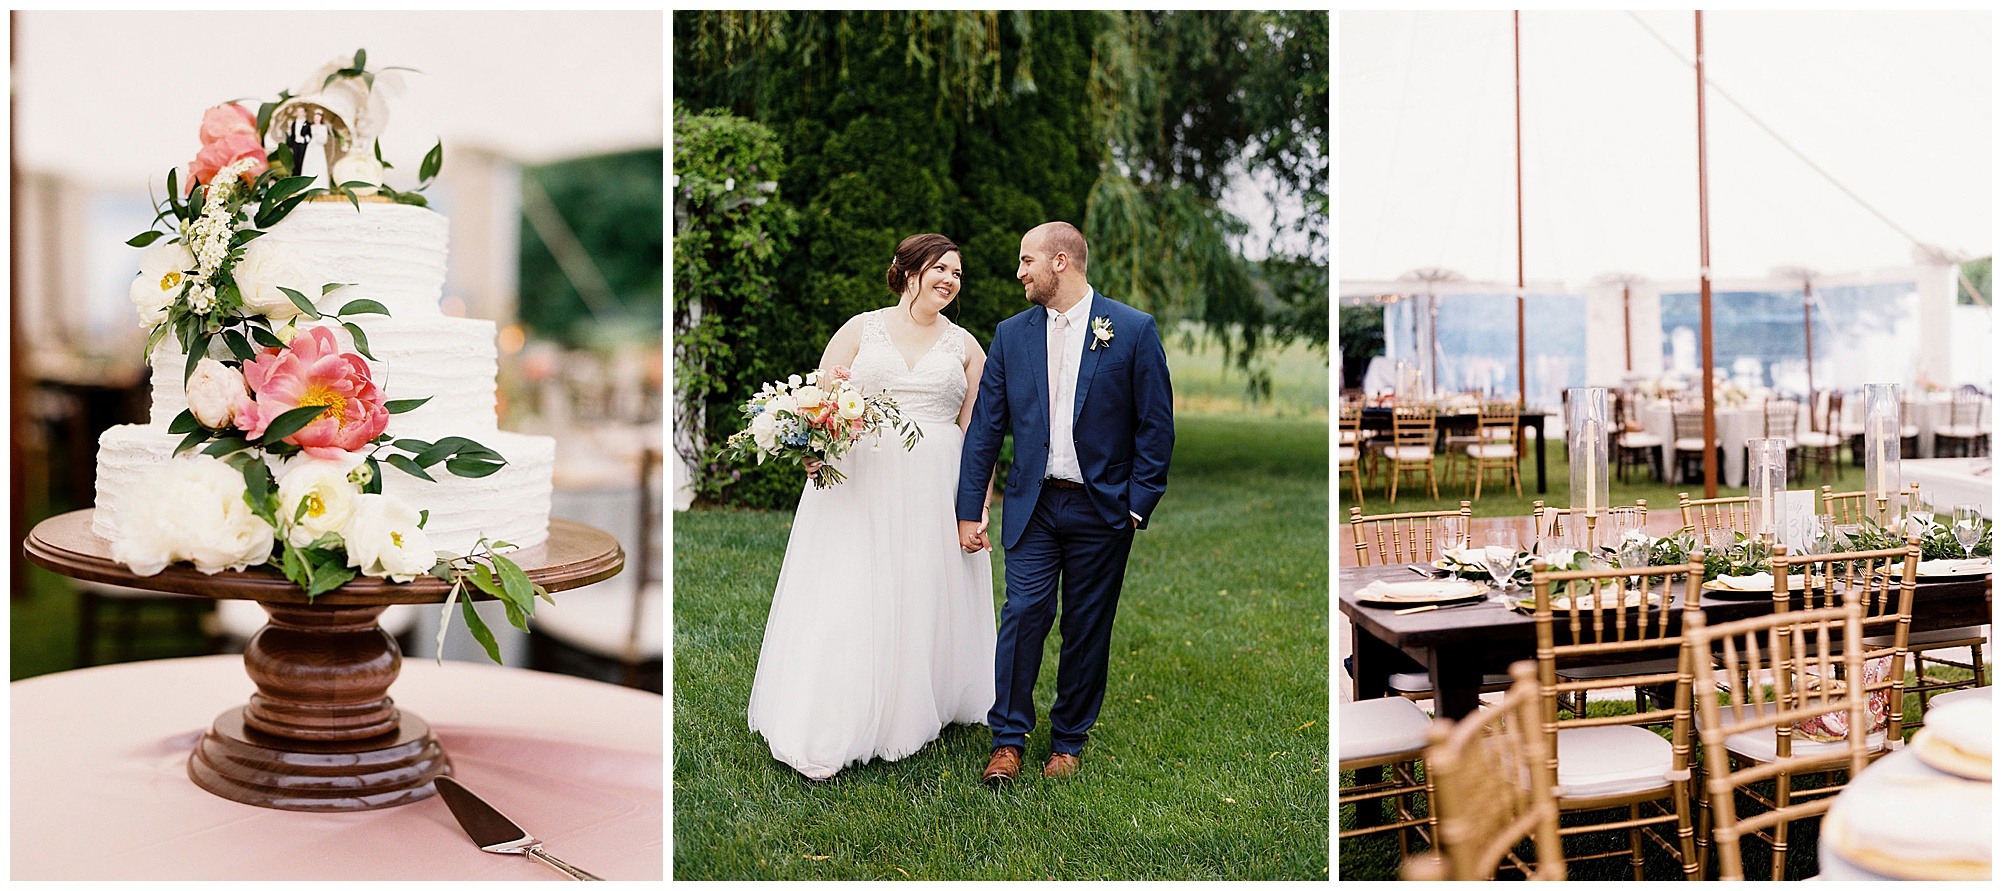 classic, timeless, modern, romantic wedding inspiration at inn at huntingfield wedding on maryland eastern shore. tiered wedding cake with handmade wooden cake stand and pink peonies, photo of happy couple outdoors smiling, and modern greenery and gold wedding reception outdoors beneath tent on the eastern shore blog